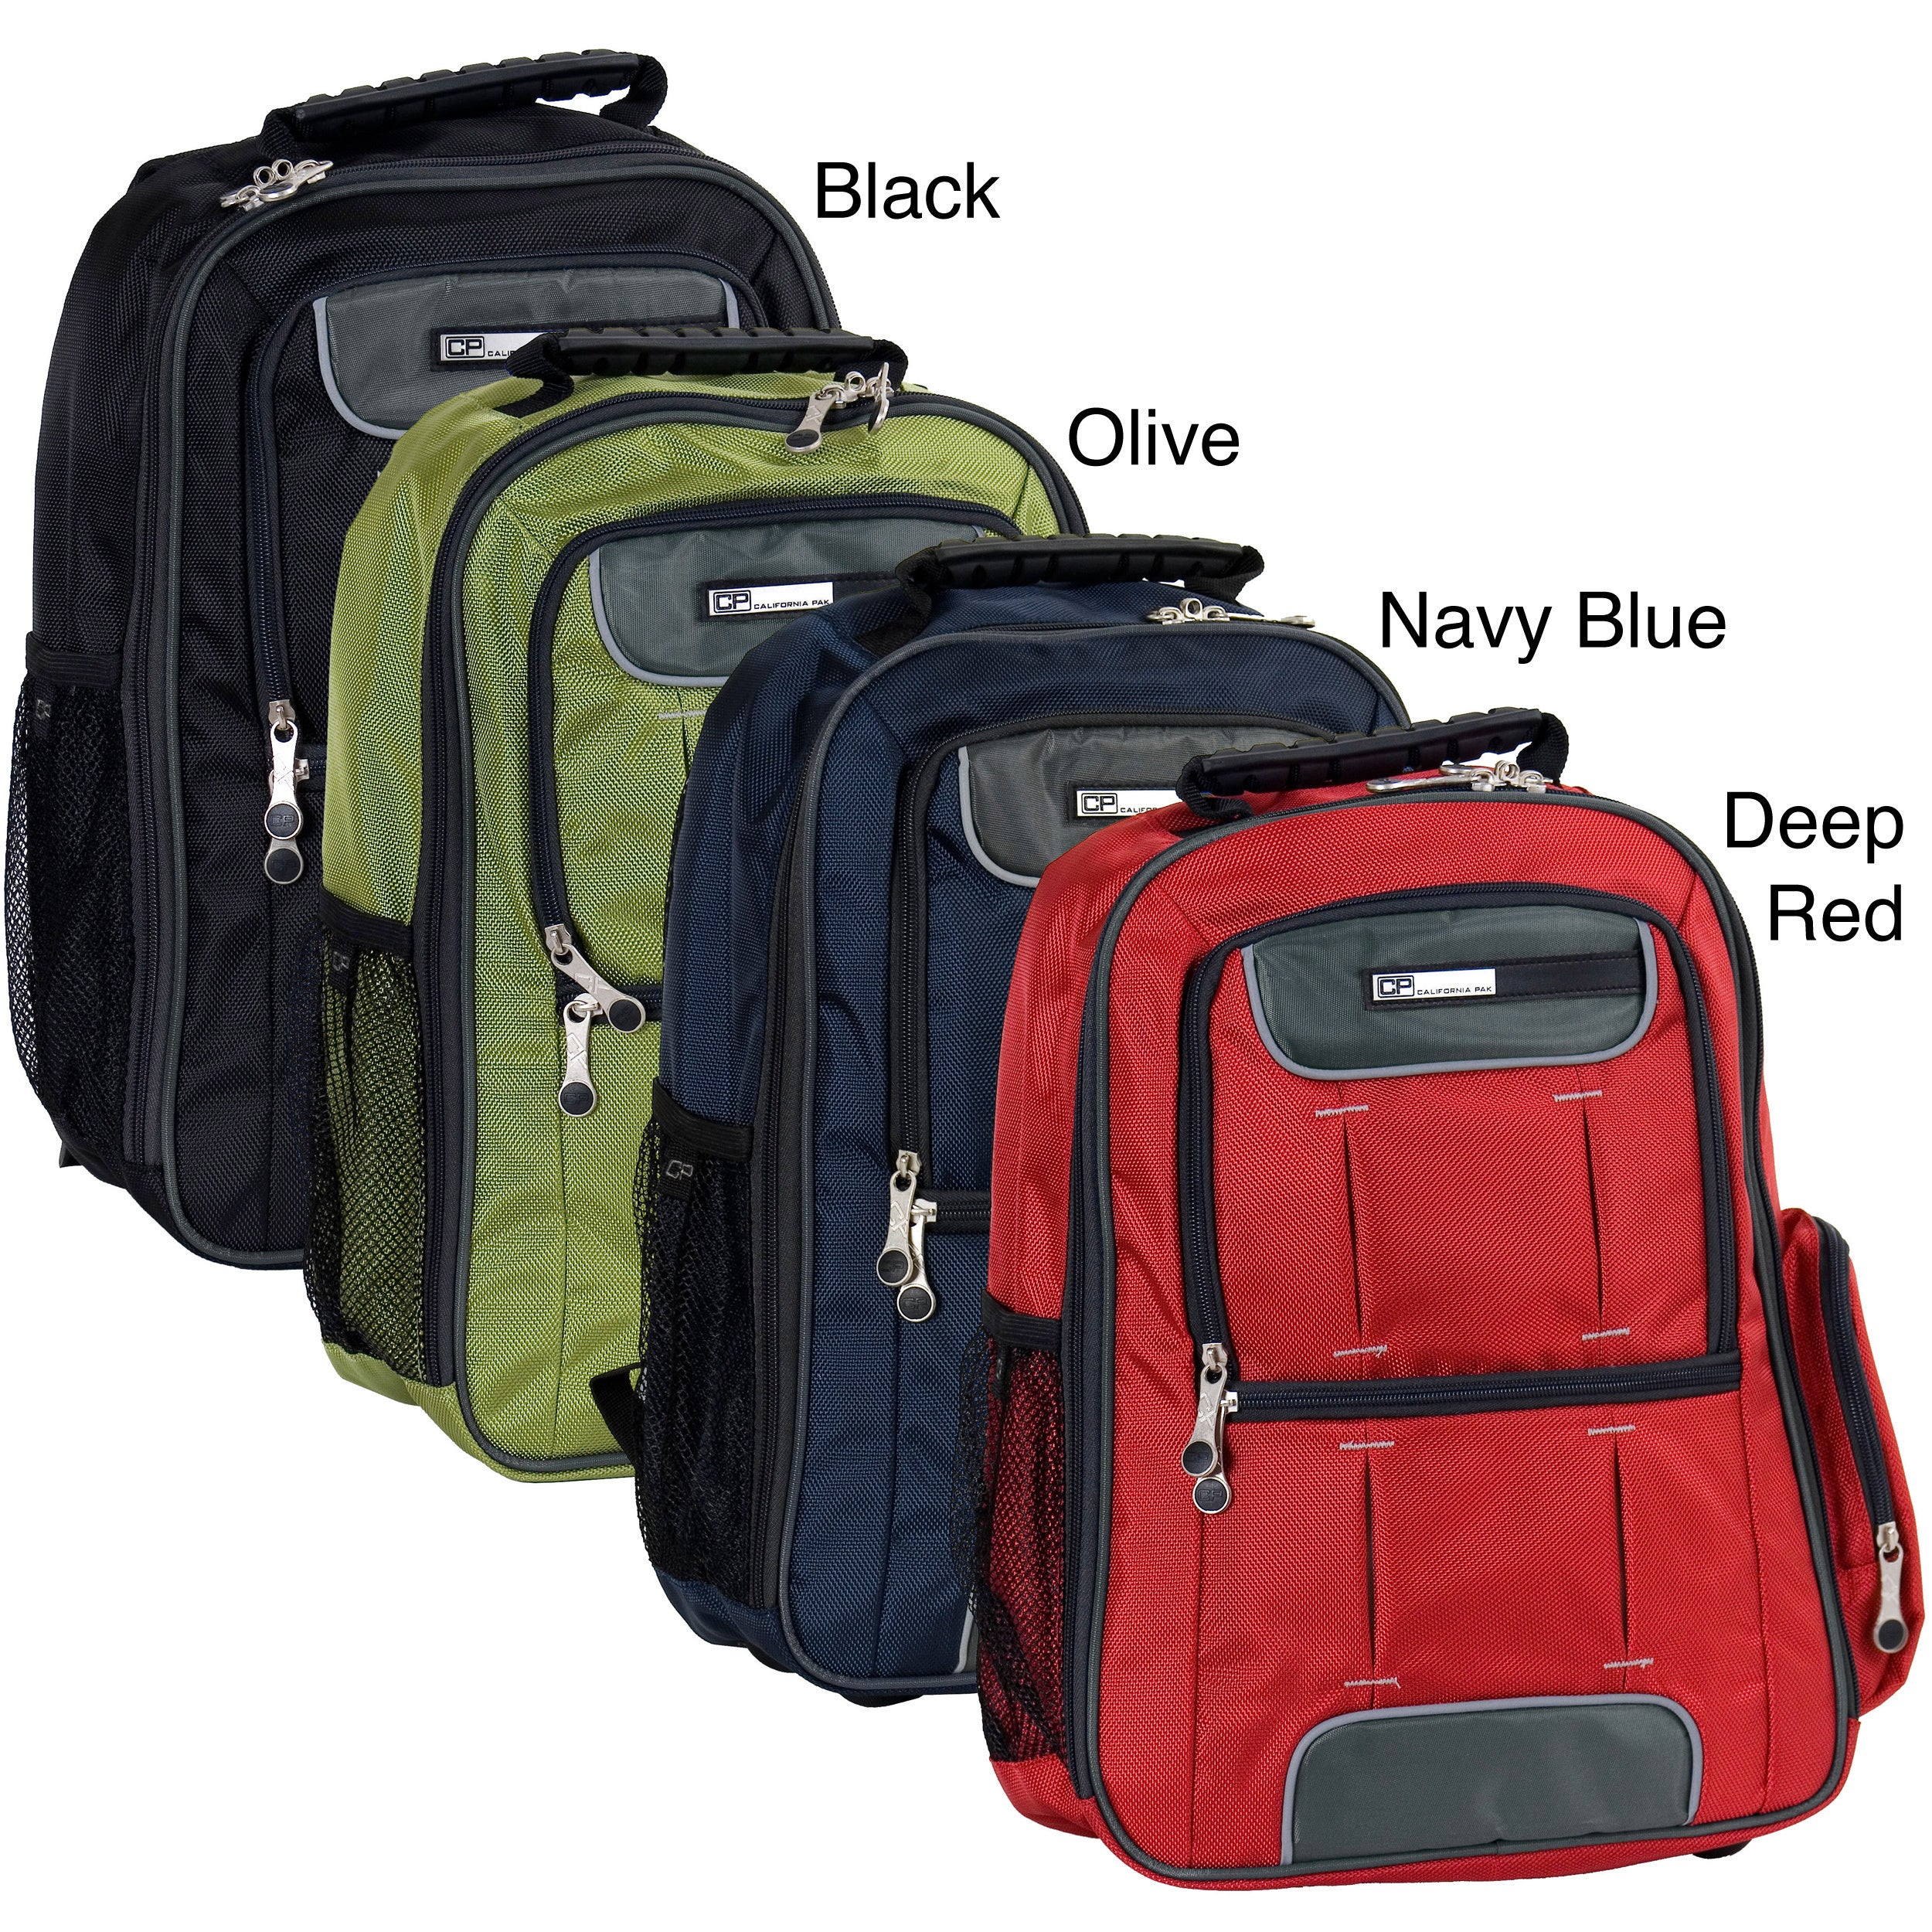 CalPak CalPak Orbit 18-inch Deluxe Laptop Backpack